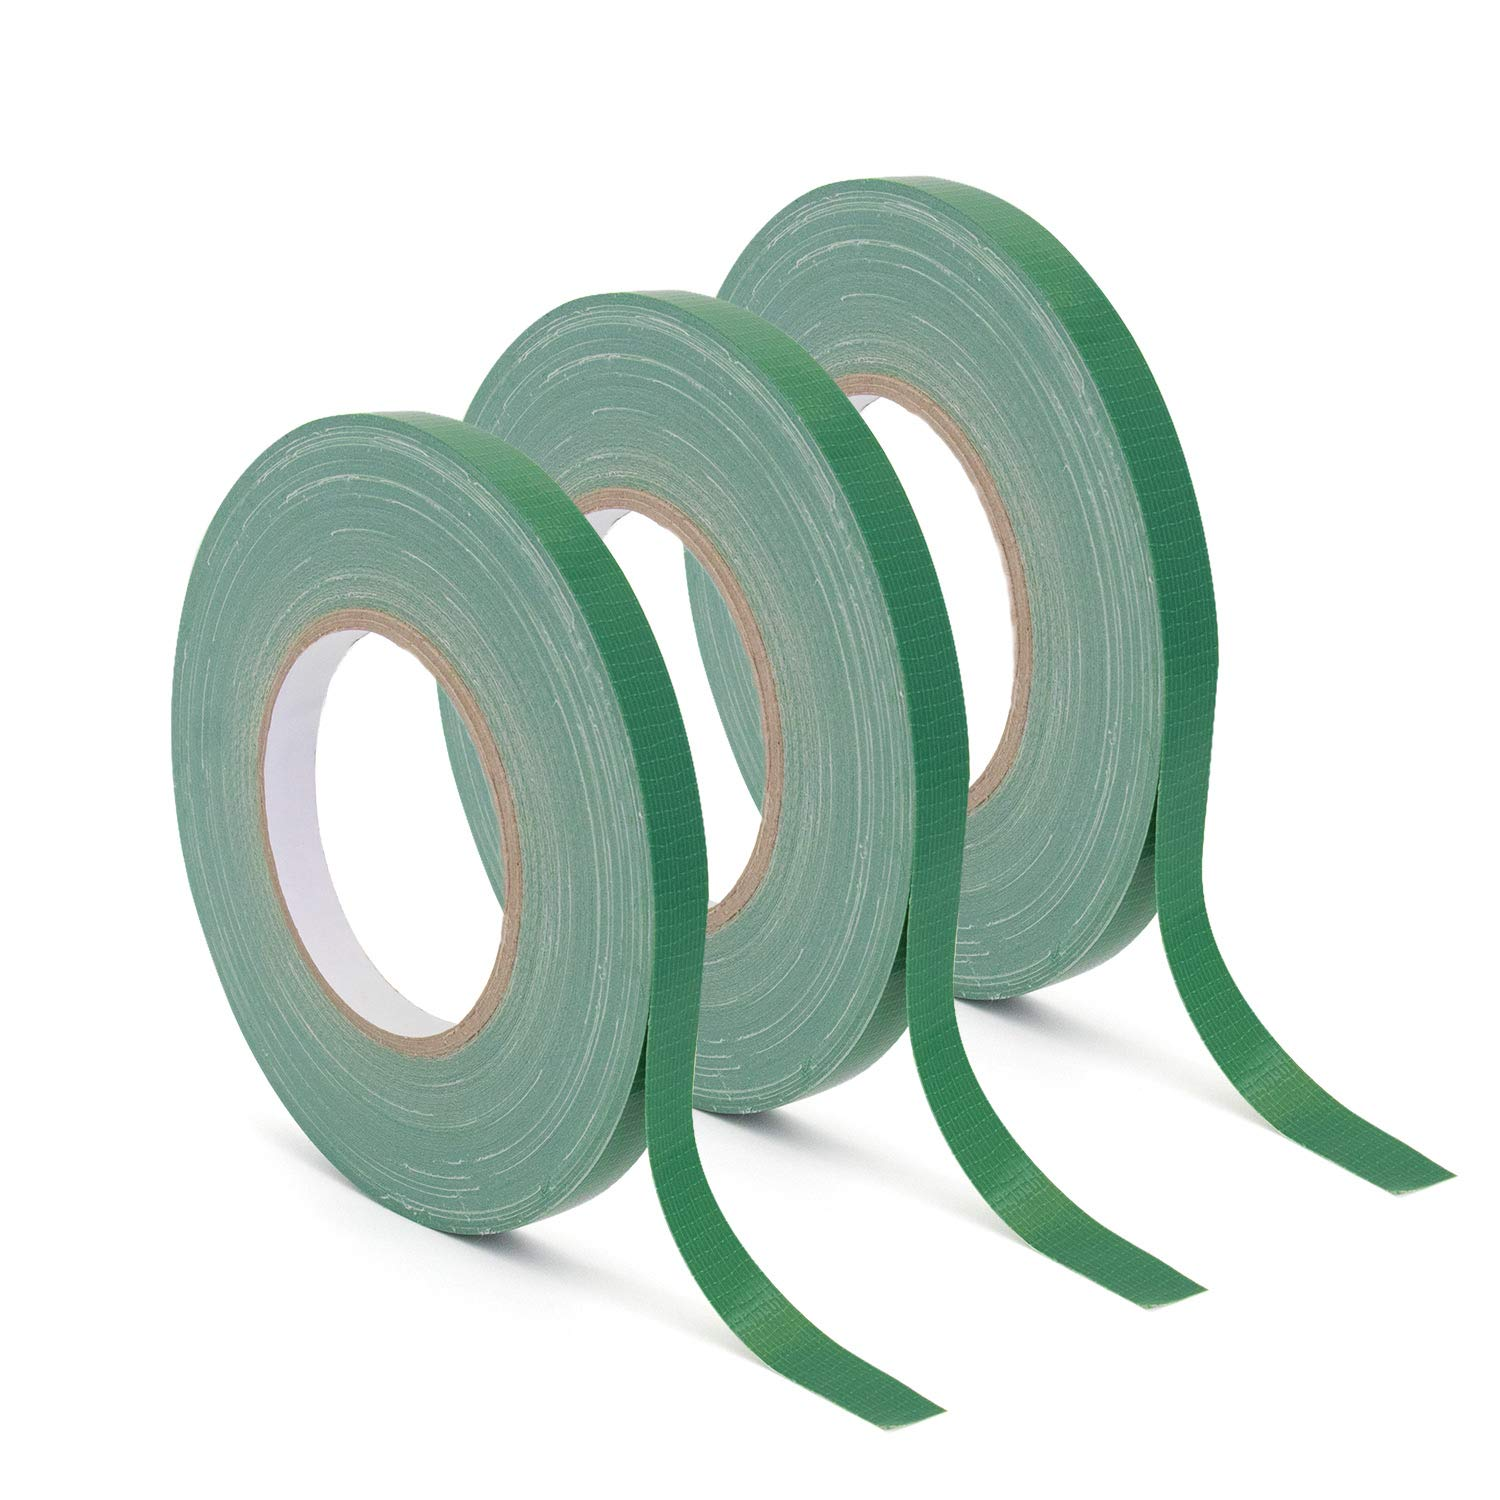 Floral Tape Green, Flower Wrap Adhesive Waterproof Tape for Bouquets by Royal Imports 0.5'' (60 Yd/180 Ft) - 3 Rolls Bulk